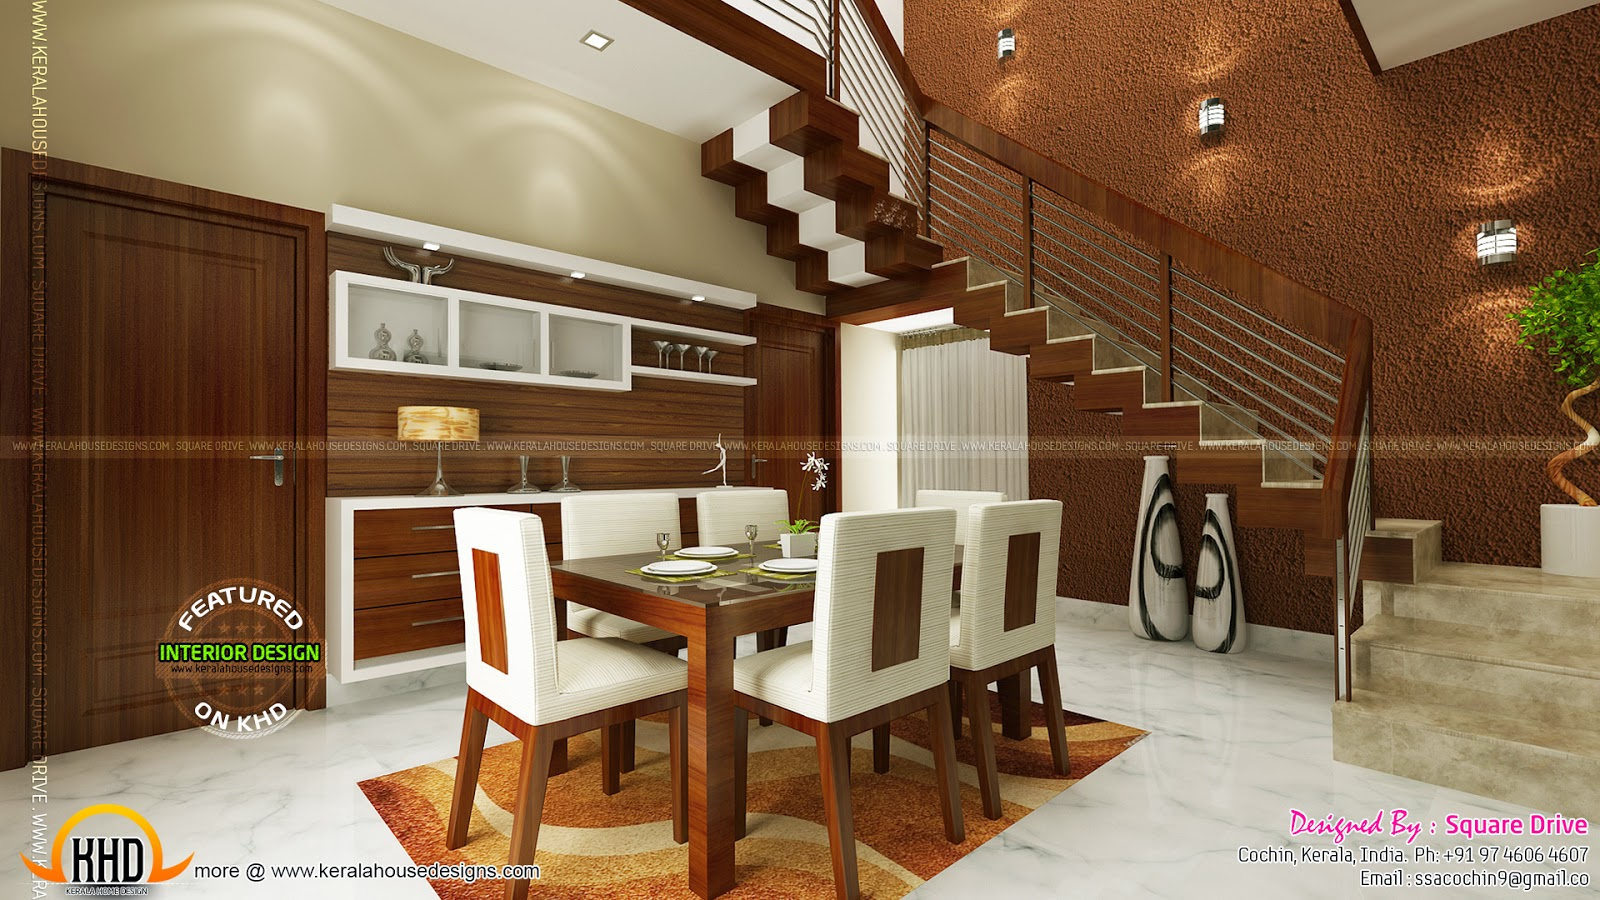 Cochin interior design kerala home design and floor plans for 3 bedroom house interior design